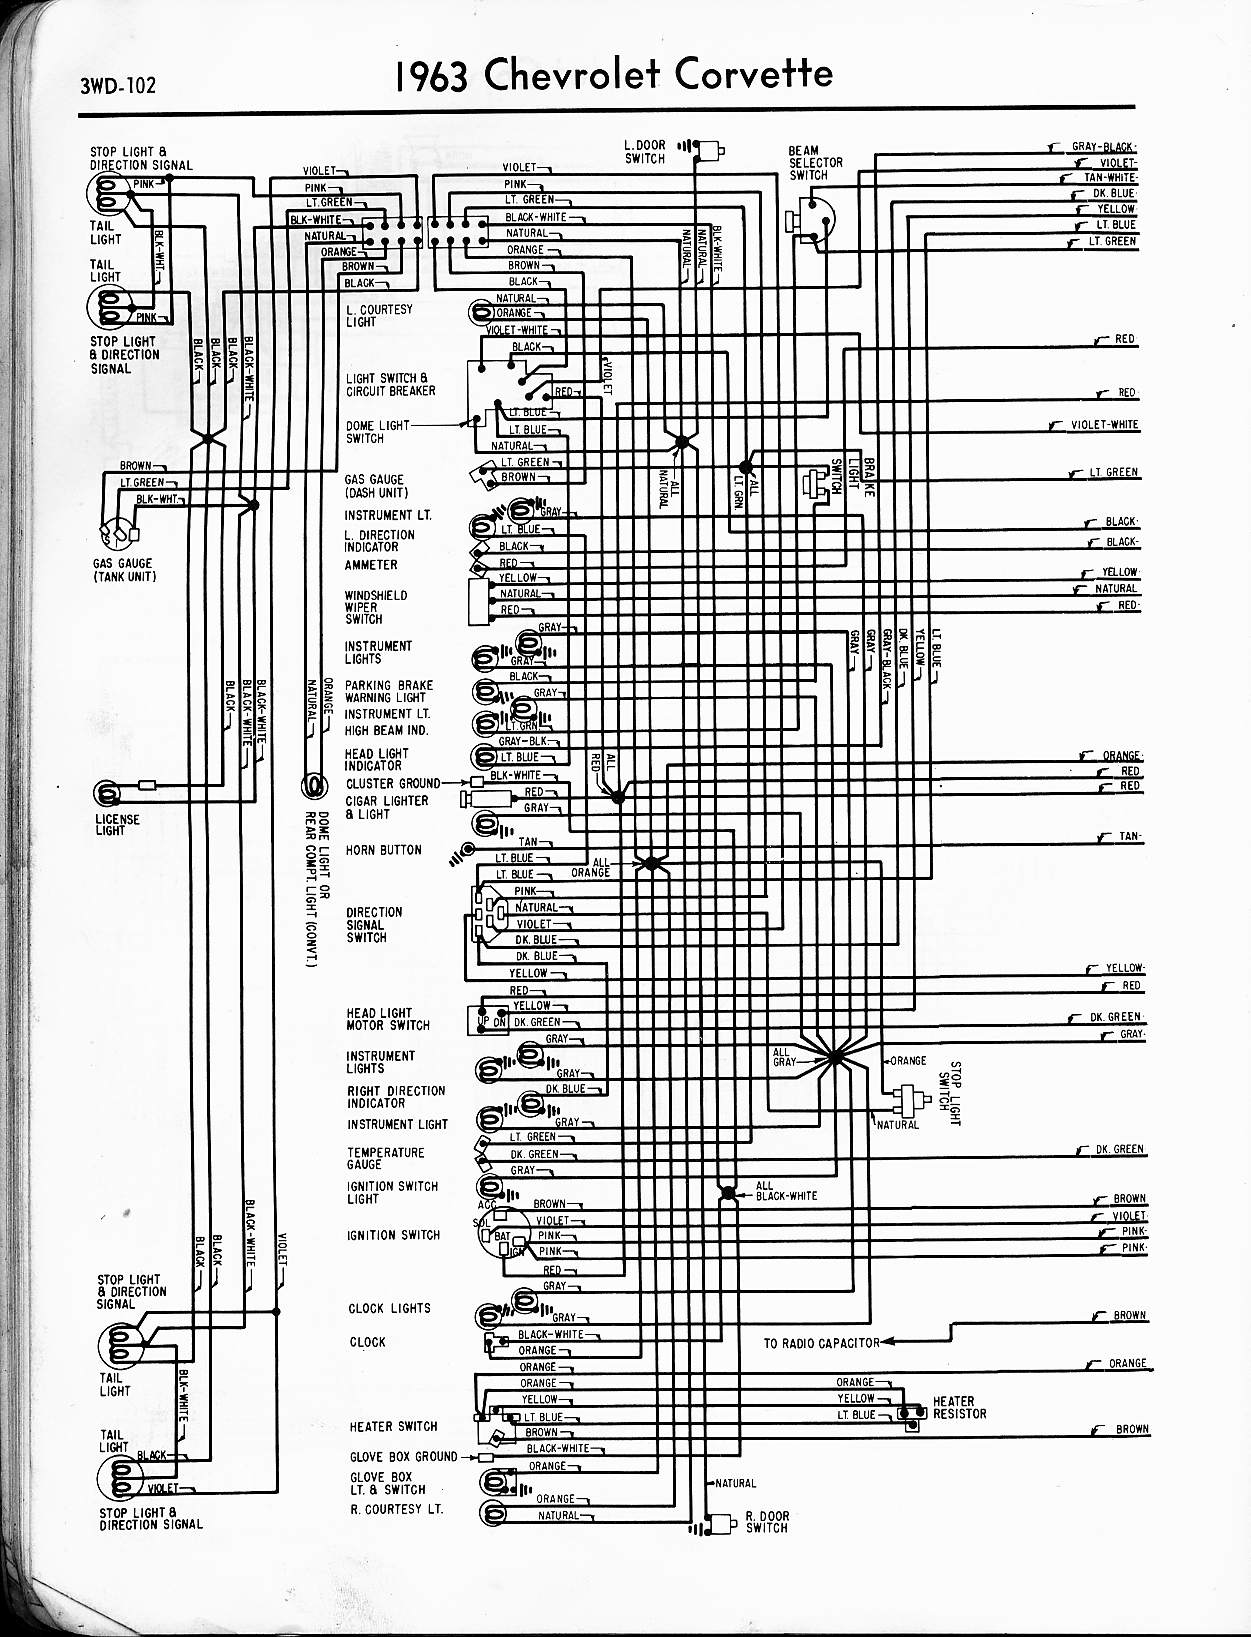 63 Nova Wiring Diagram Library 62 Corvette Opinions About U2022 Fuel Tank